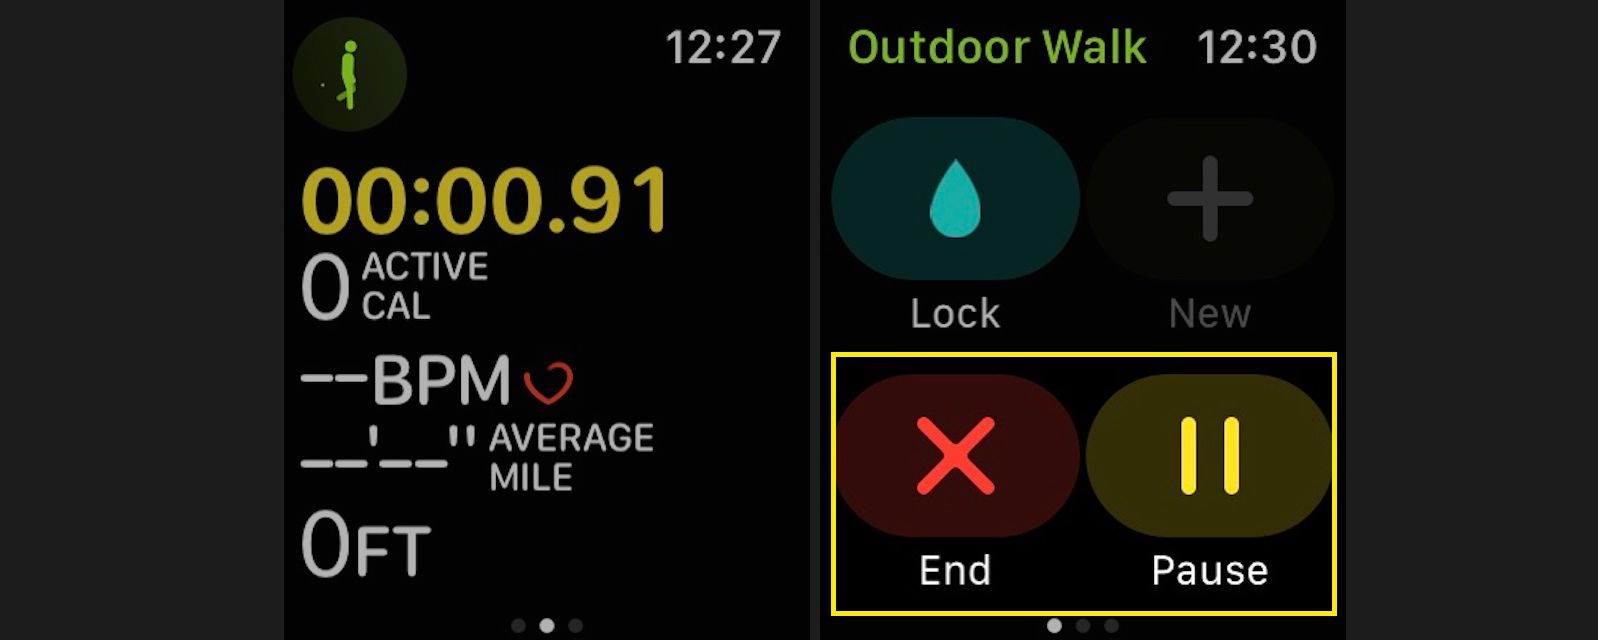 End or pause a workout on your Apple Watch